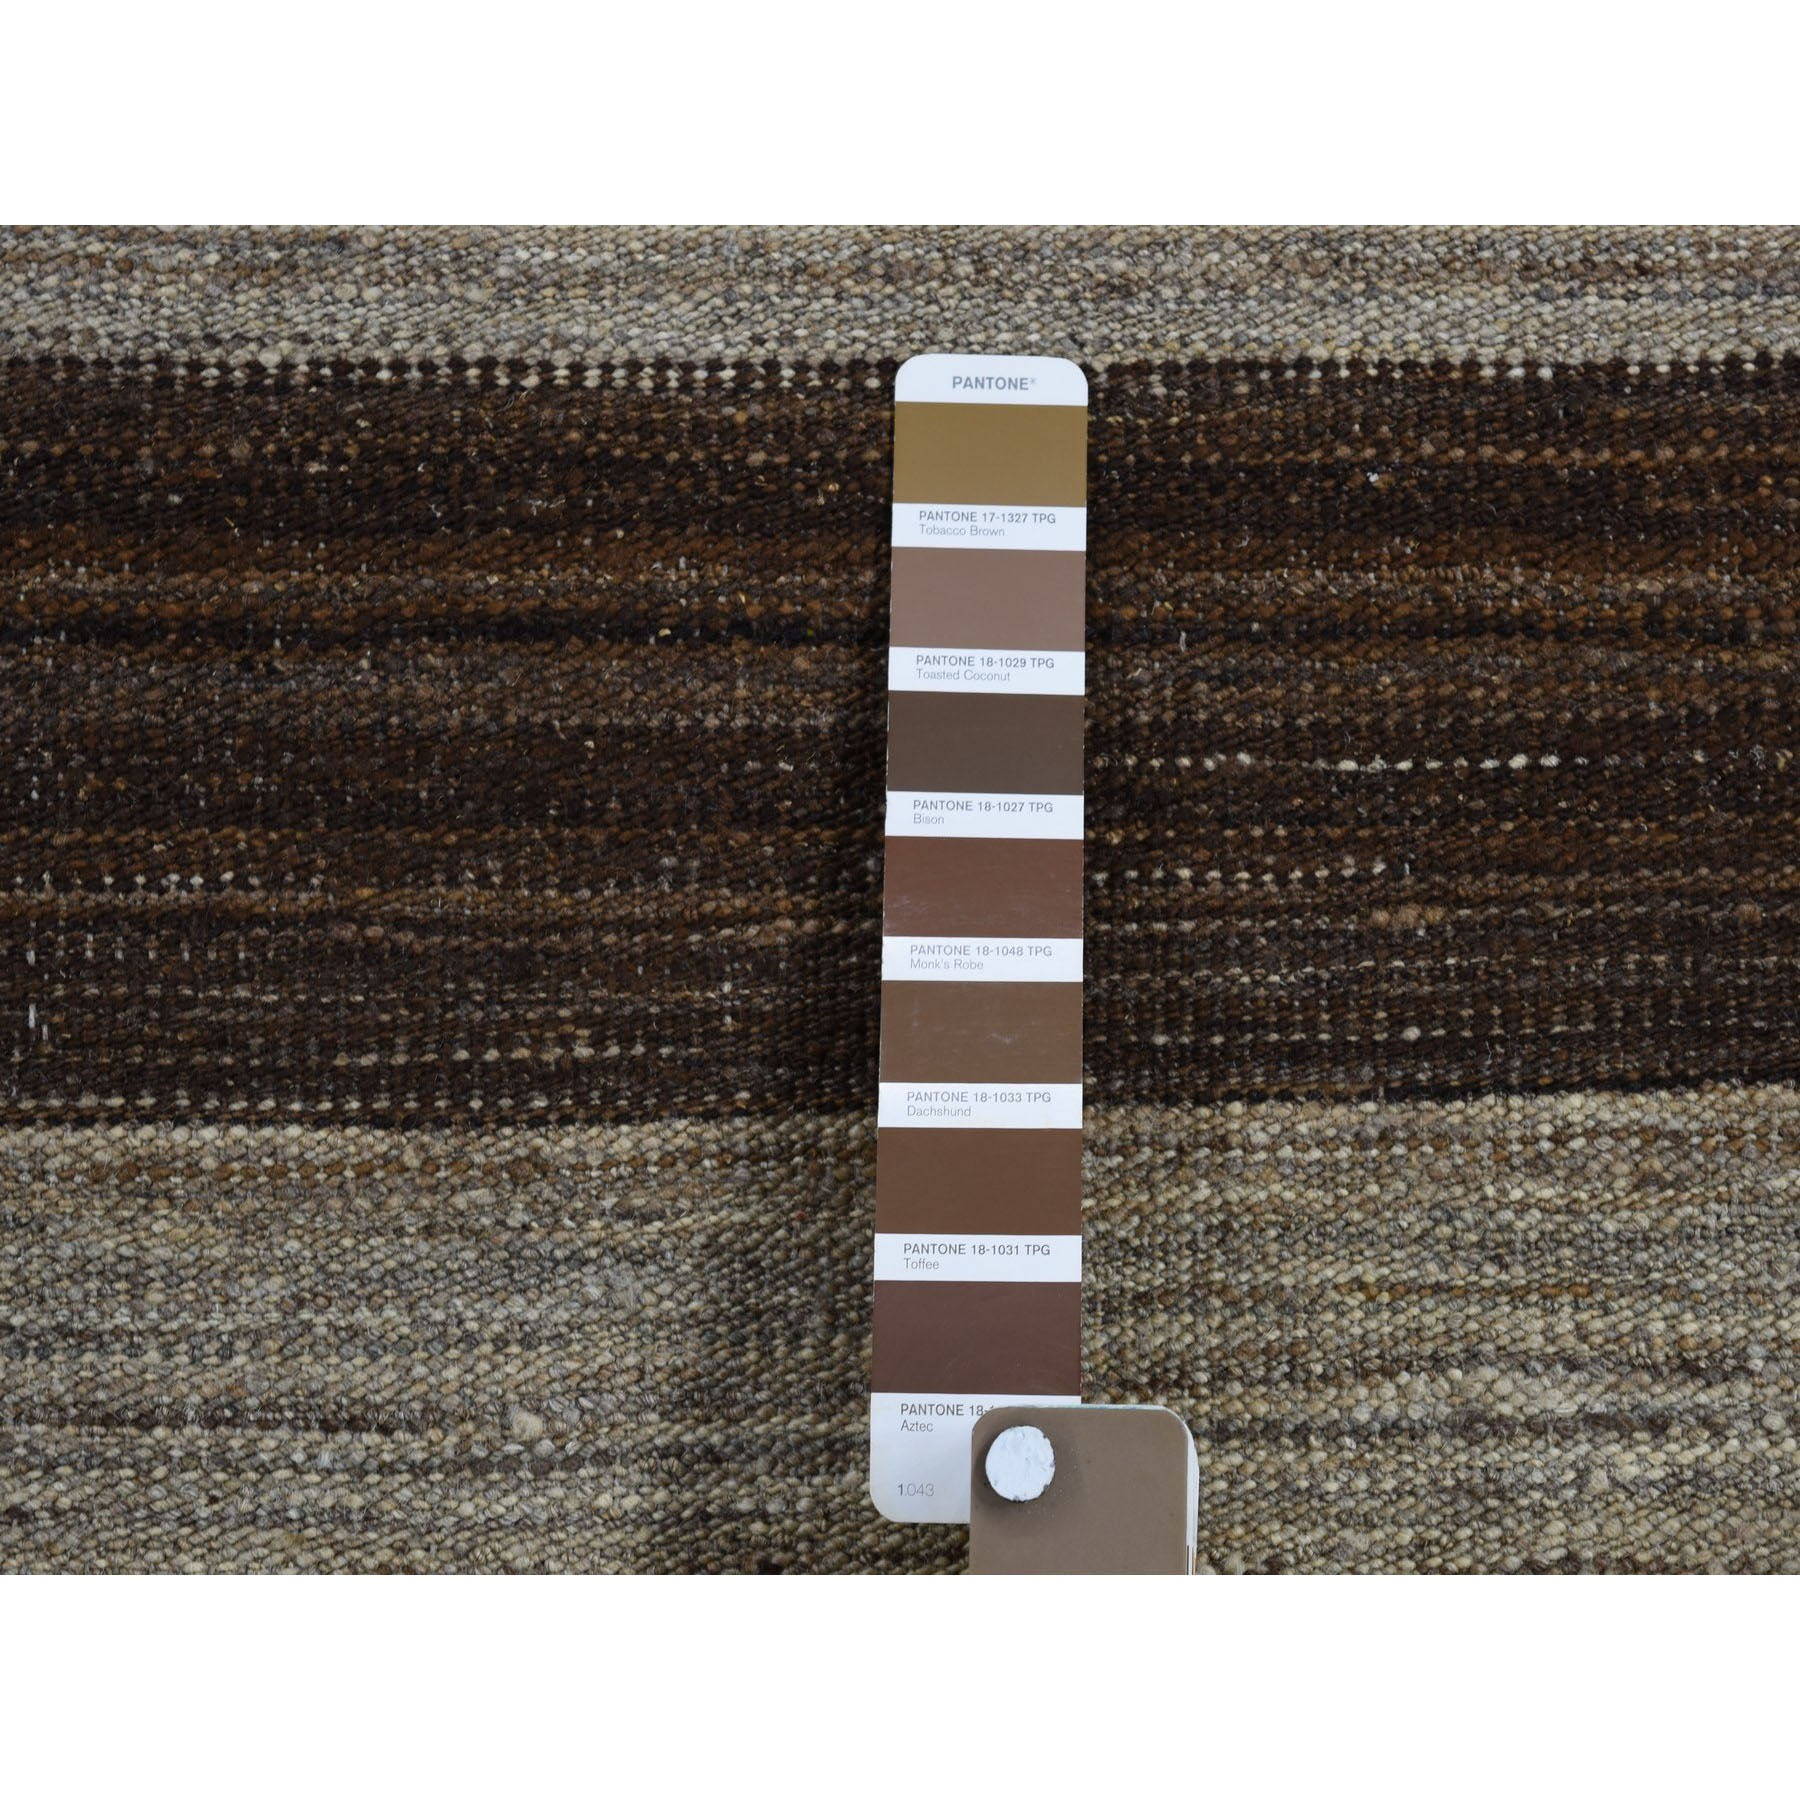 2'x3' Undyed Natural Wool Flat Weave Kilim Hand Woven Oriental Rug